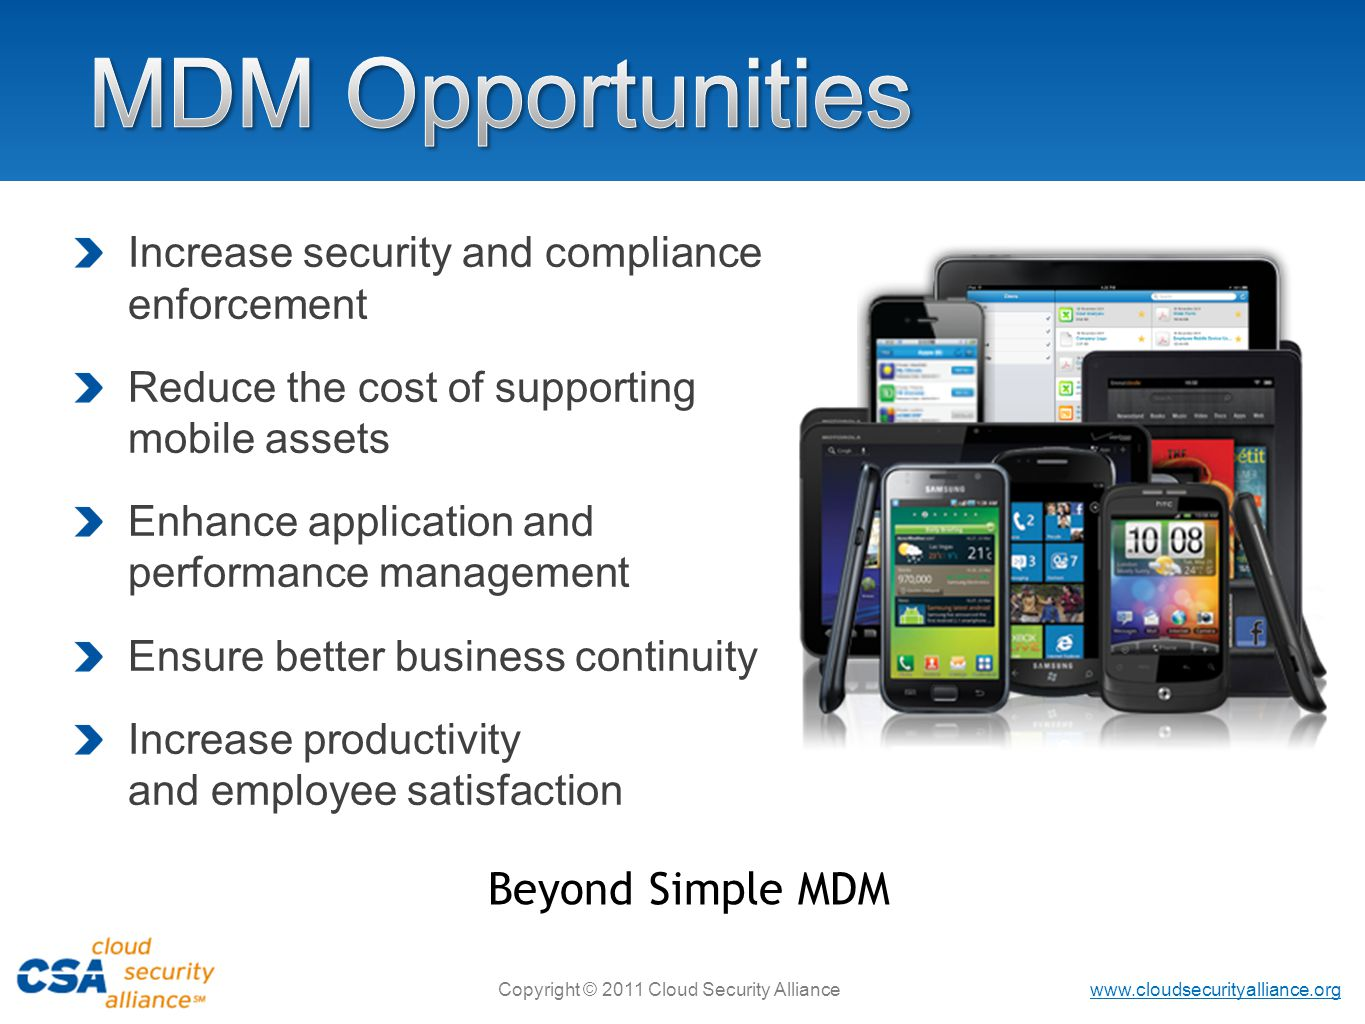 MDM Opportunities Beyond Simple MDM